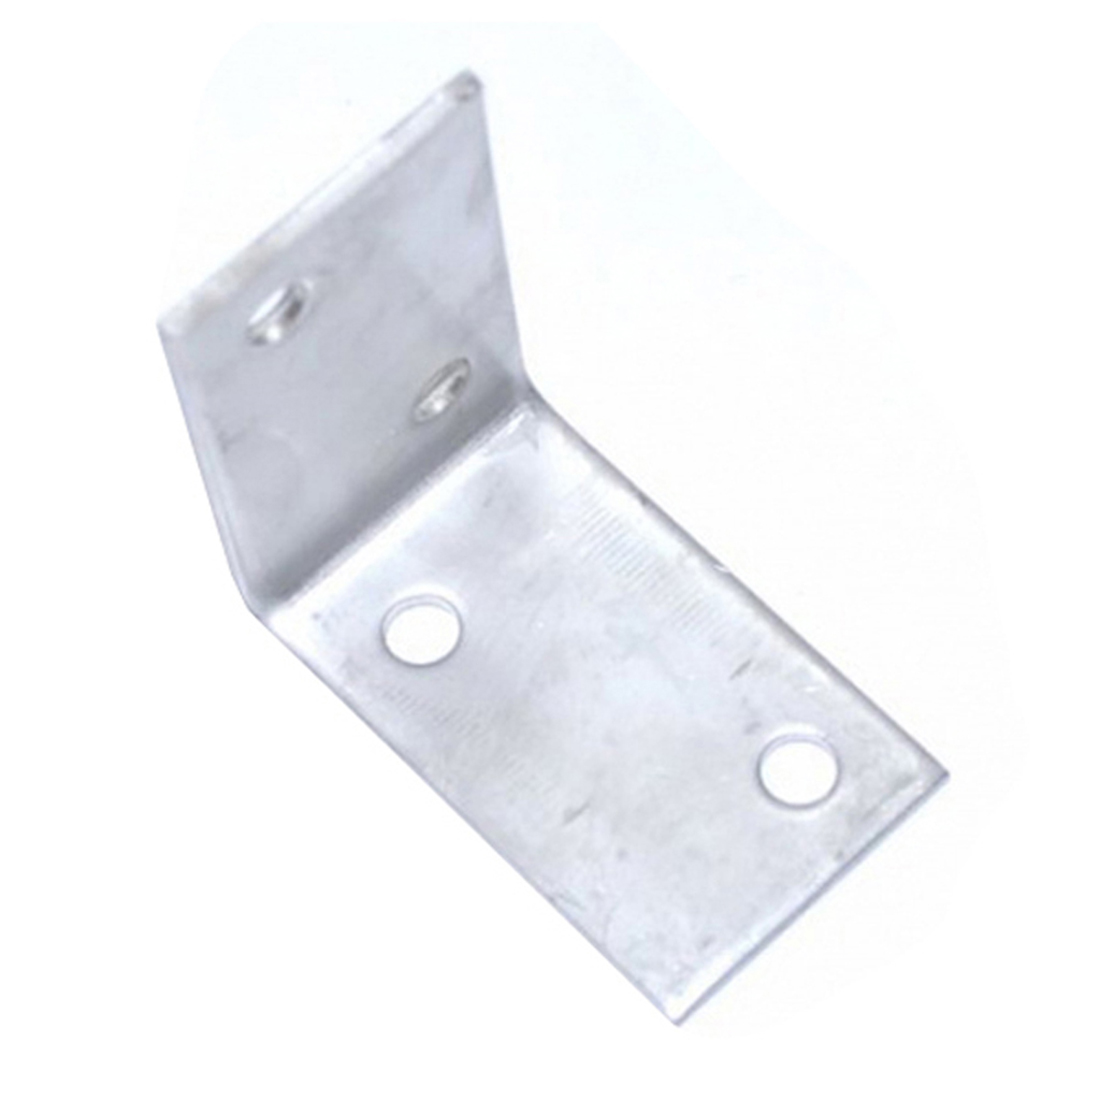 Angle Bracket 75 x 75 x 18 x 3mm 304 Stainless Steel BANS4075E018R